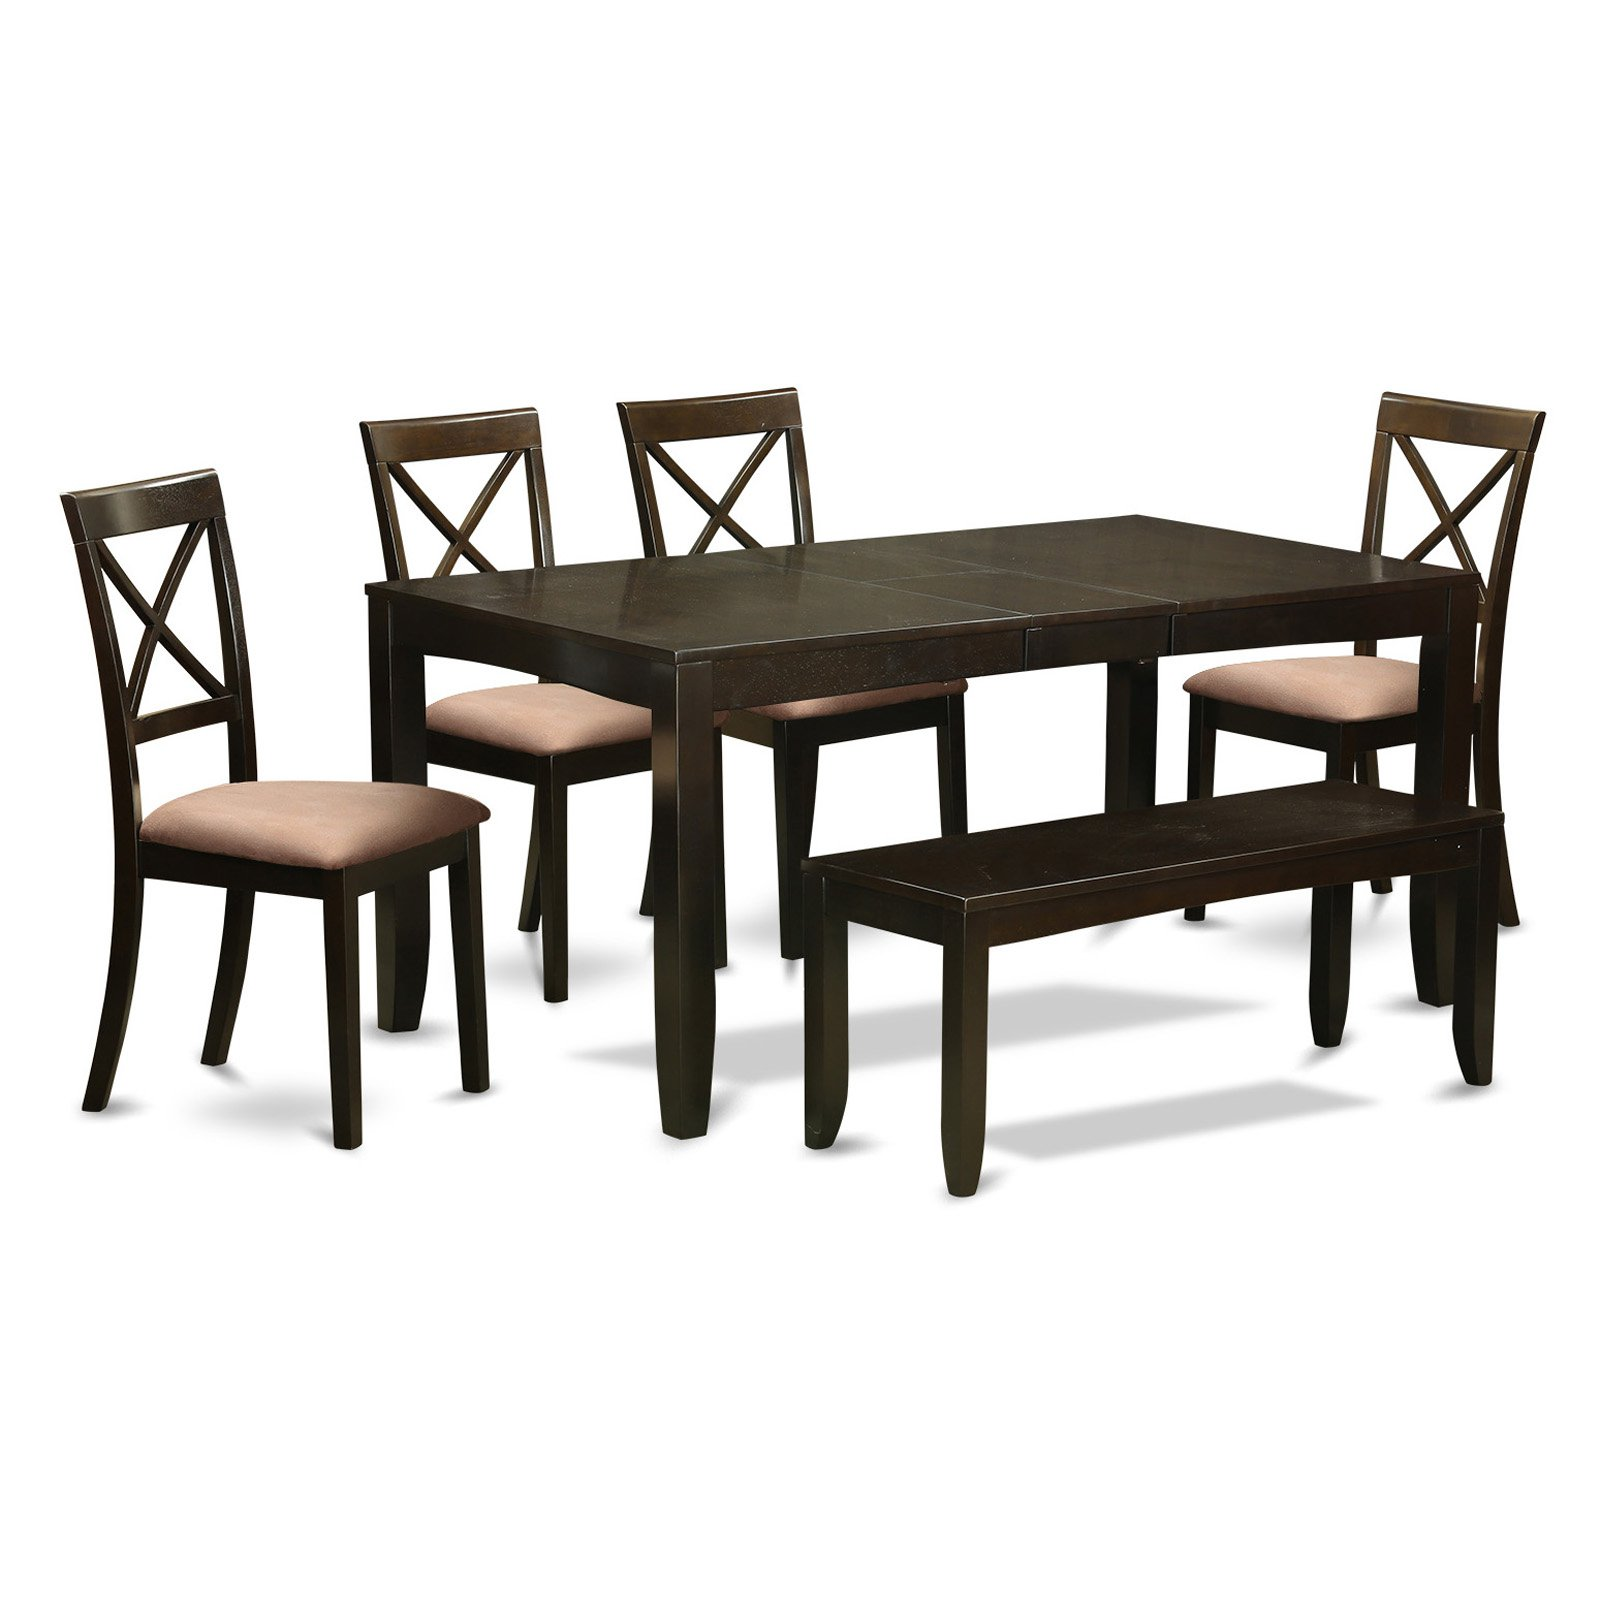 East West Furniture Lynfield 6 Piece Extension Dining Table Set with Boston Chairs